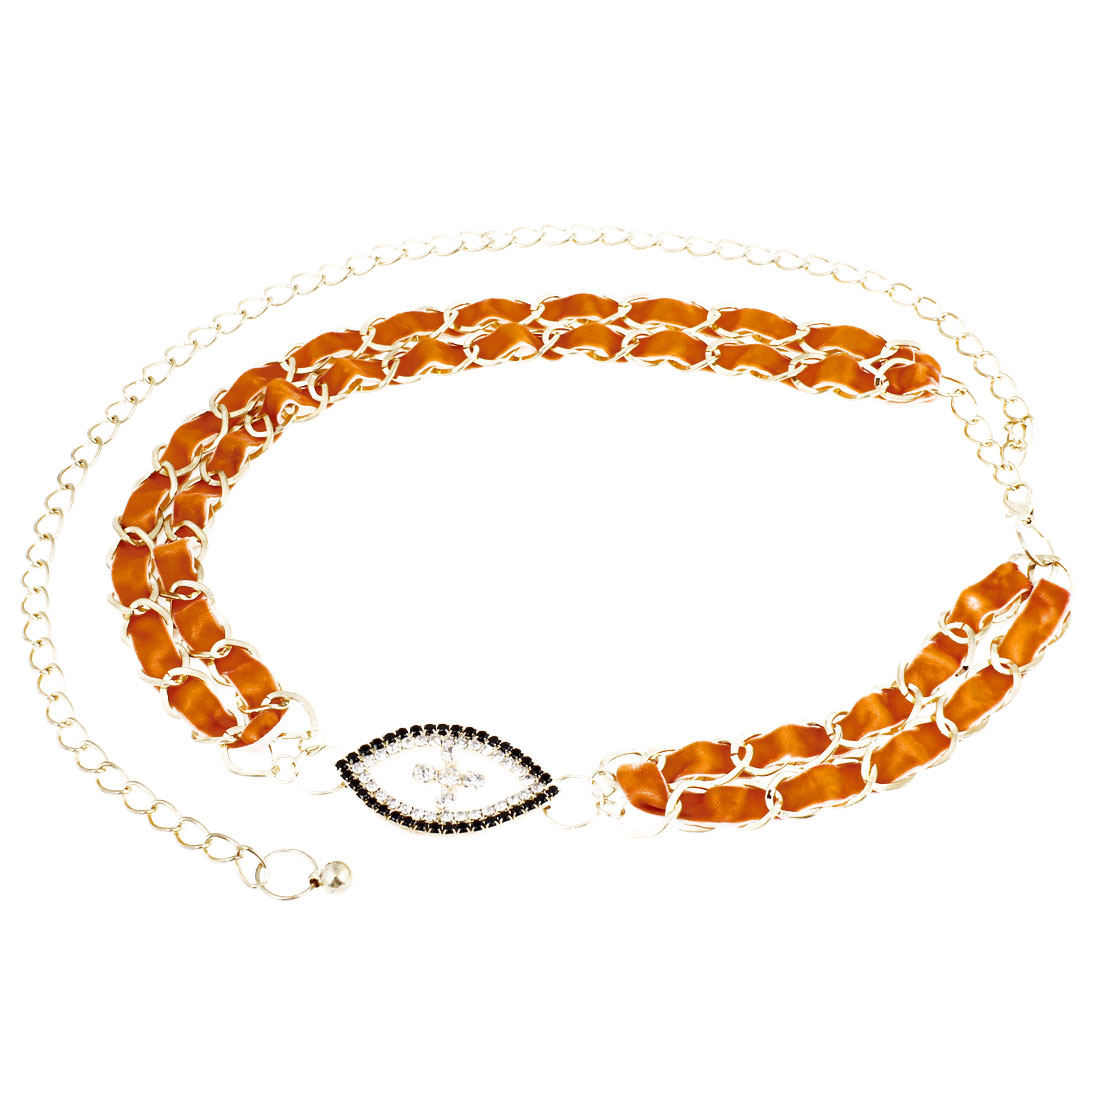 Rhinestone Decor Orange Gold Tone Adjustable Waist Chain Belt for Lady